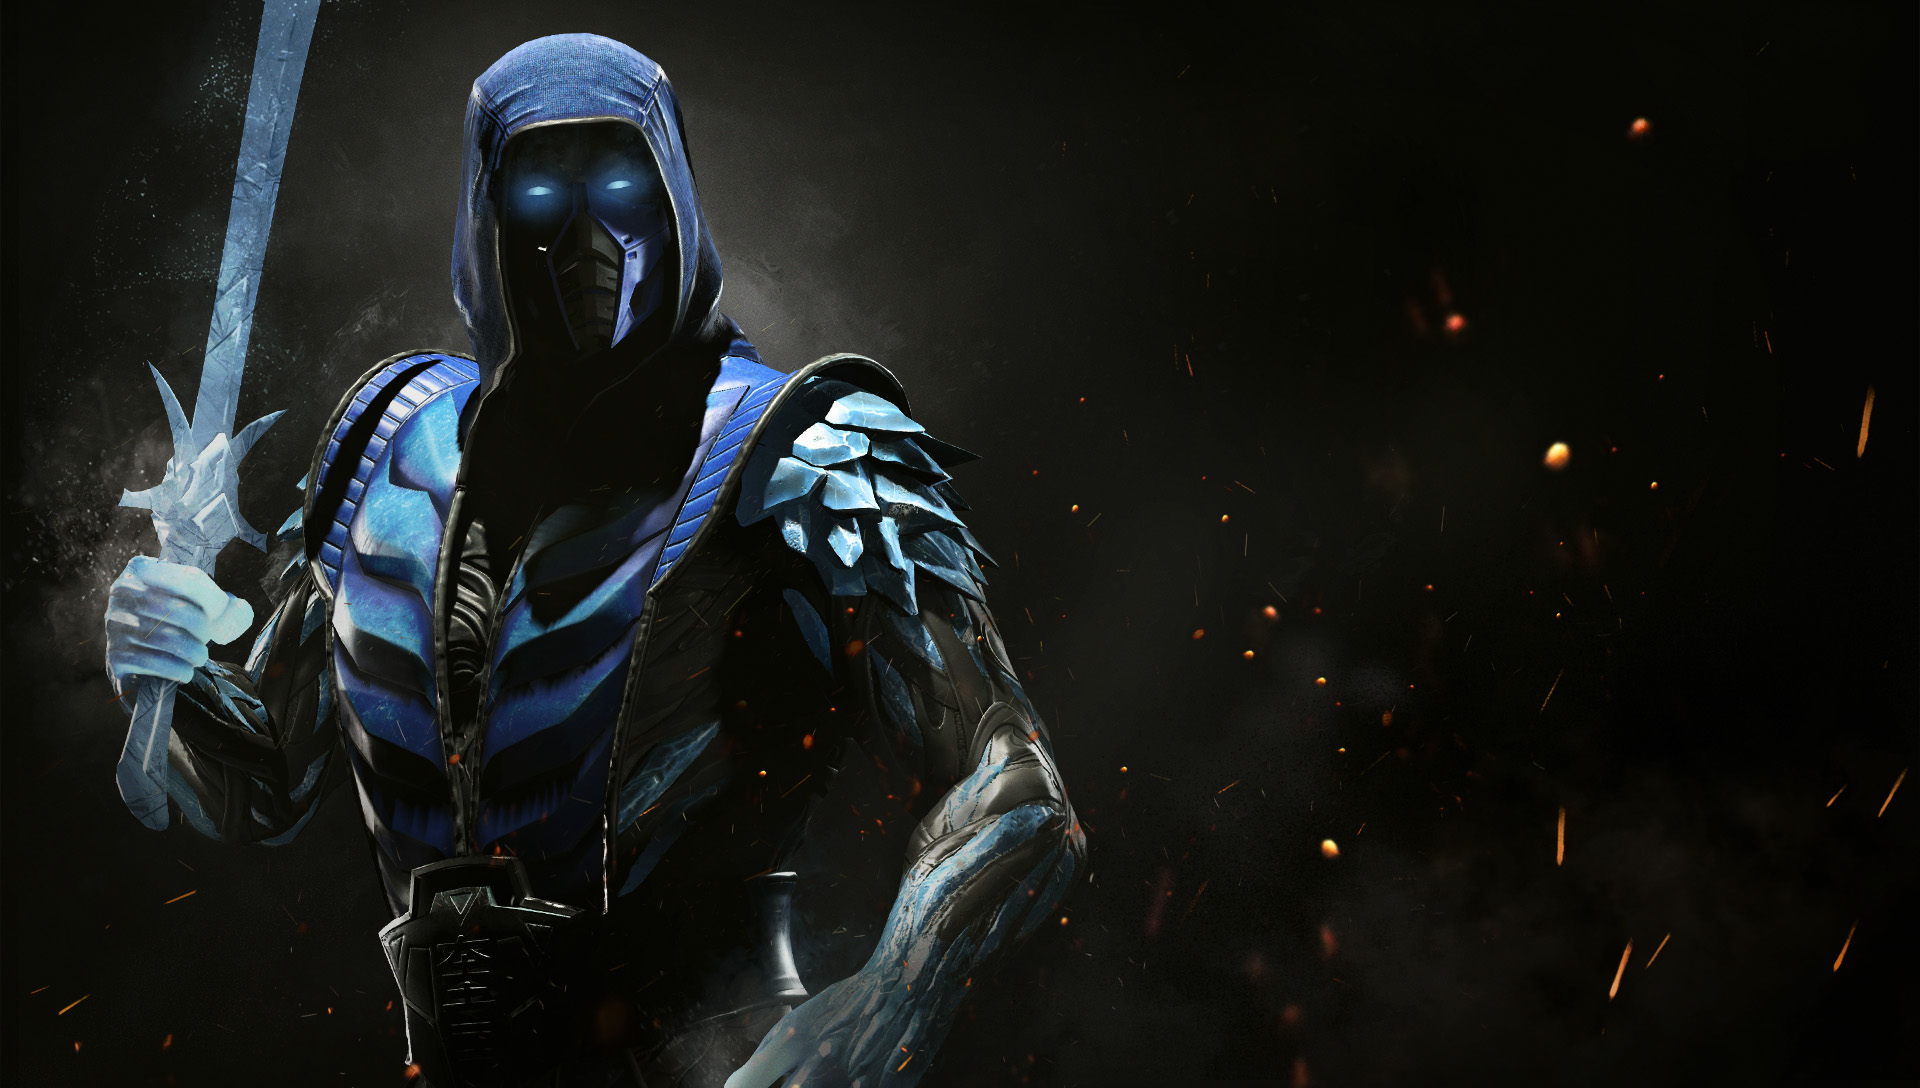 Injustice 2 Pack Owners Receiving Mortal Kombat's Sub-Zero Today